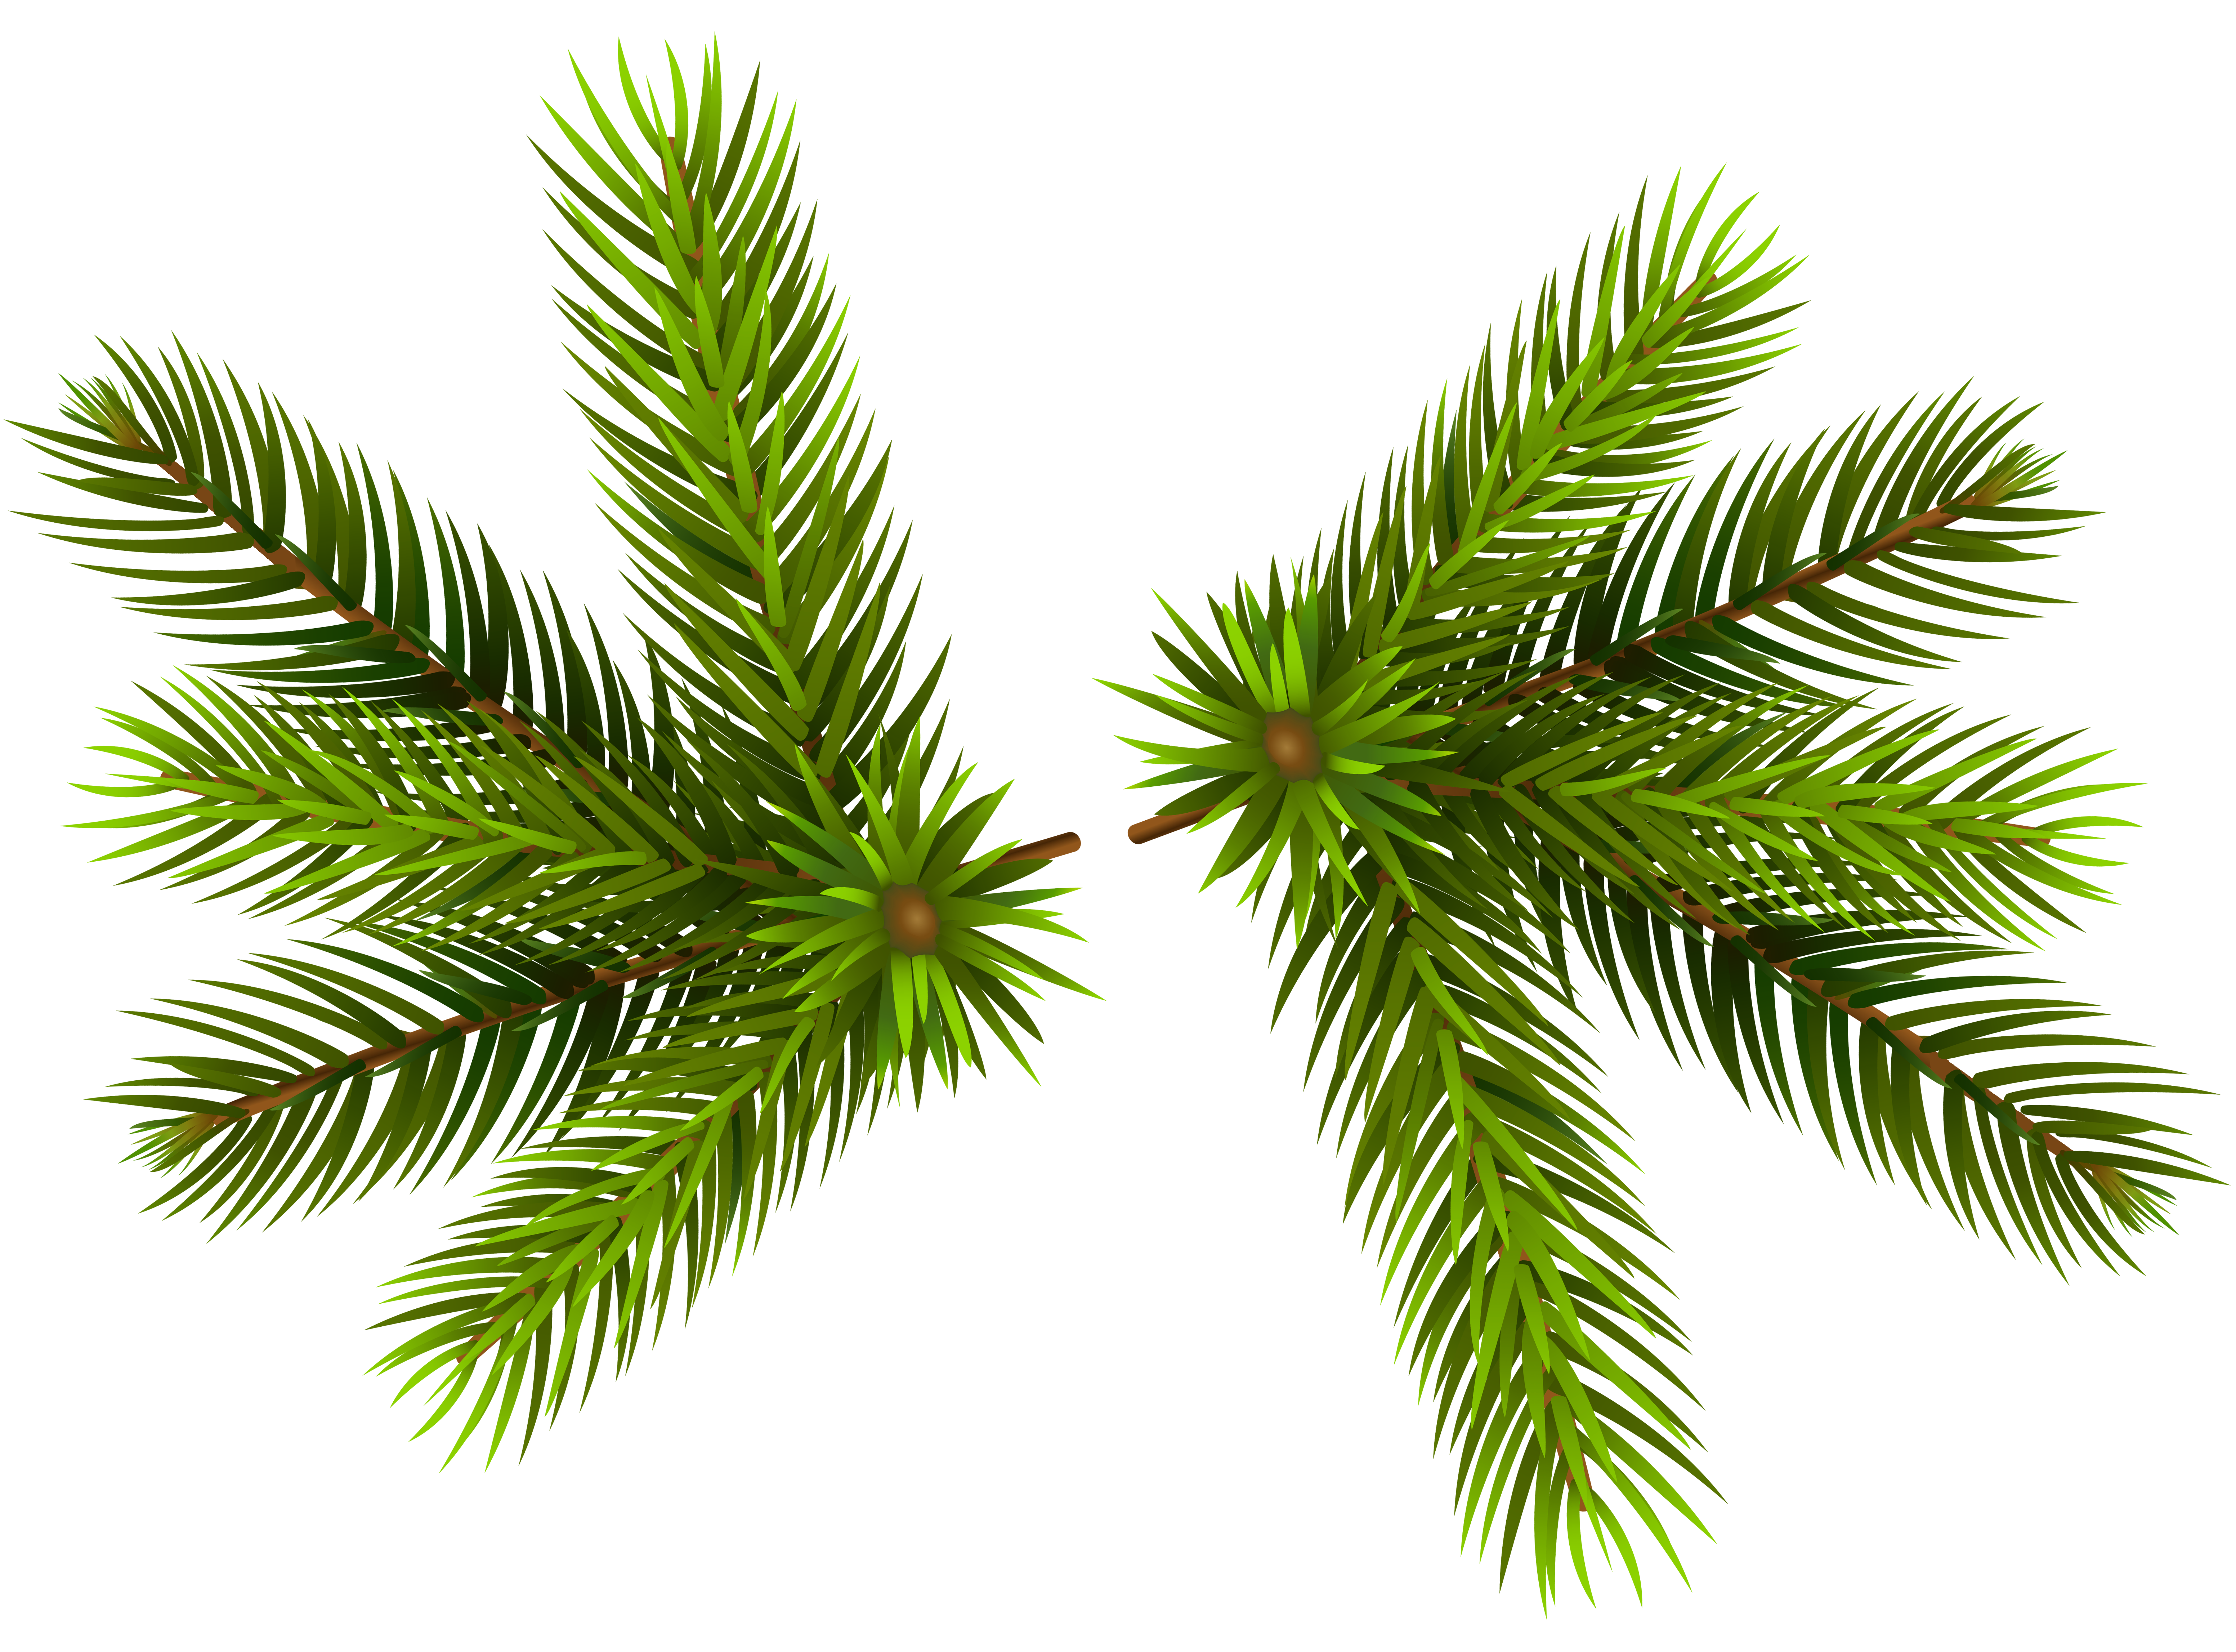 Pine free collection download. Garland clipart bough